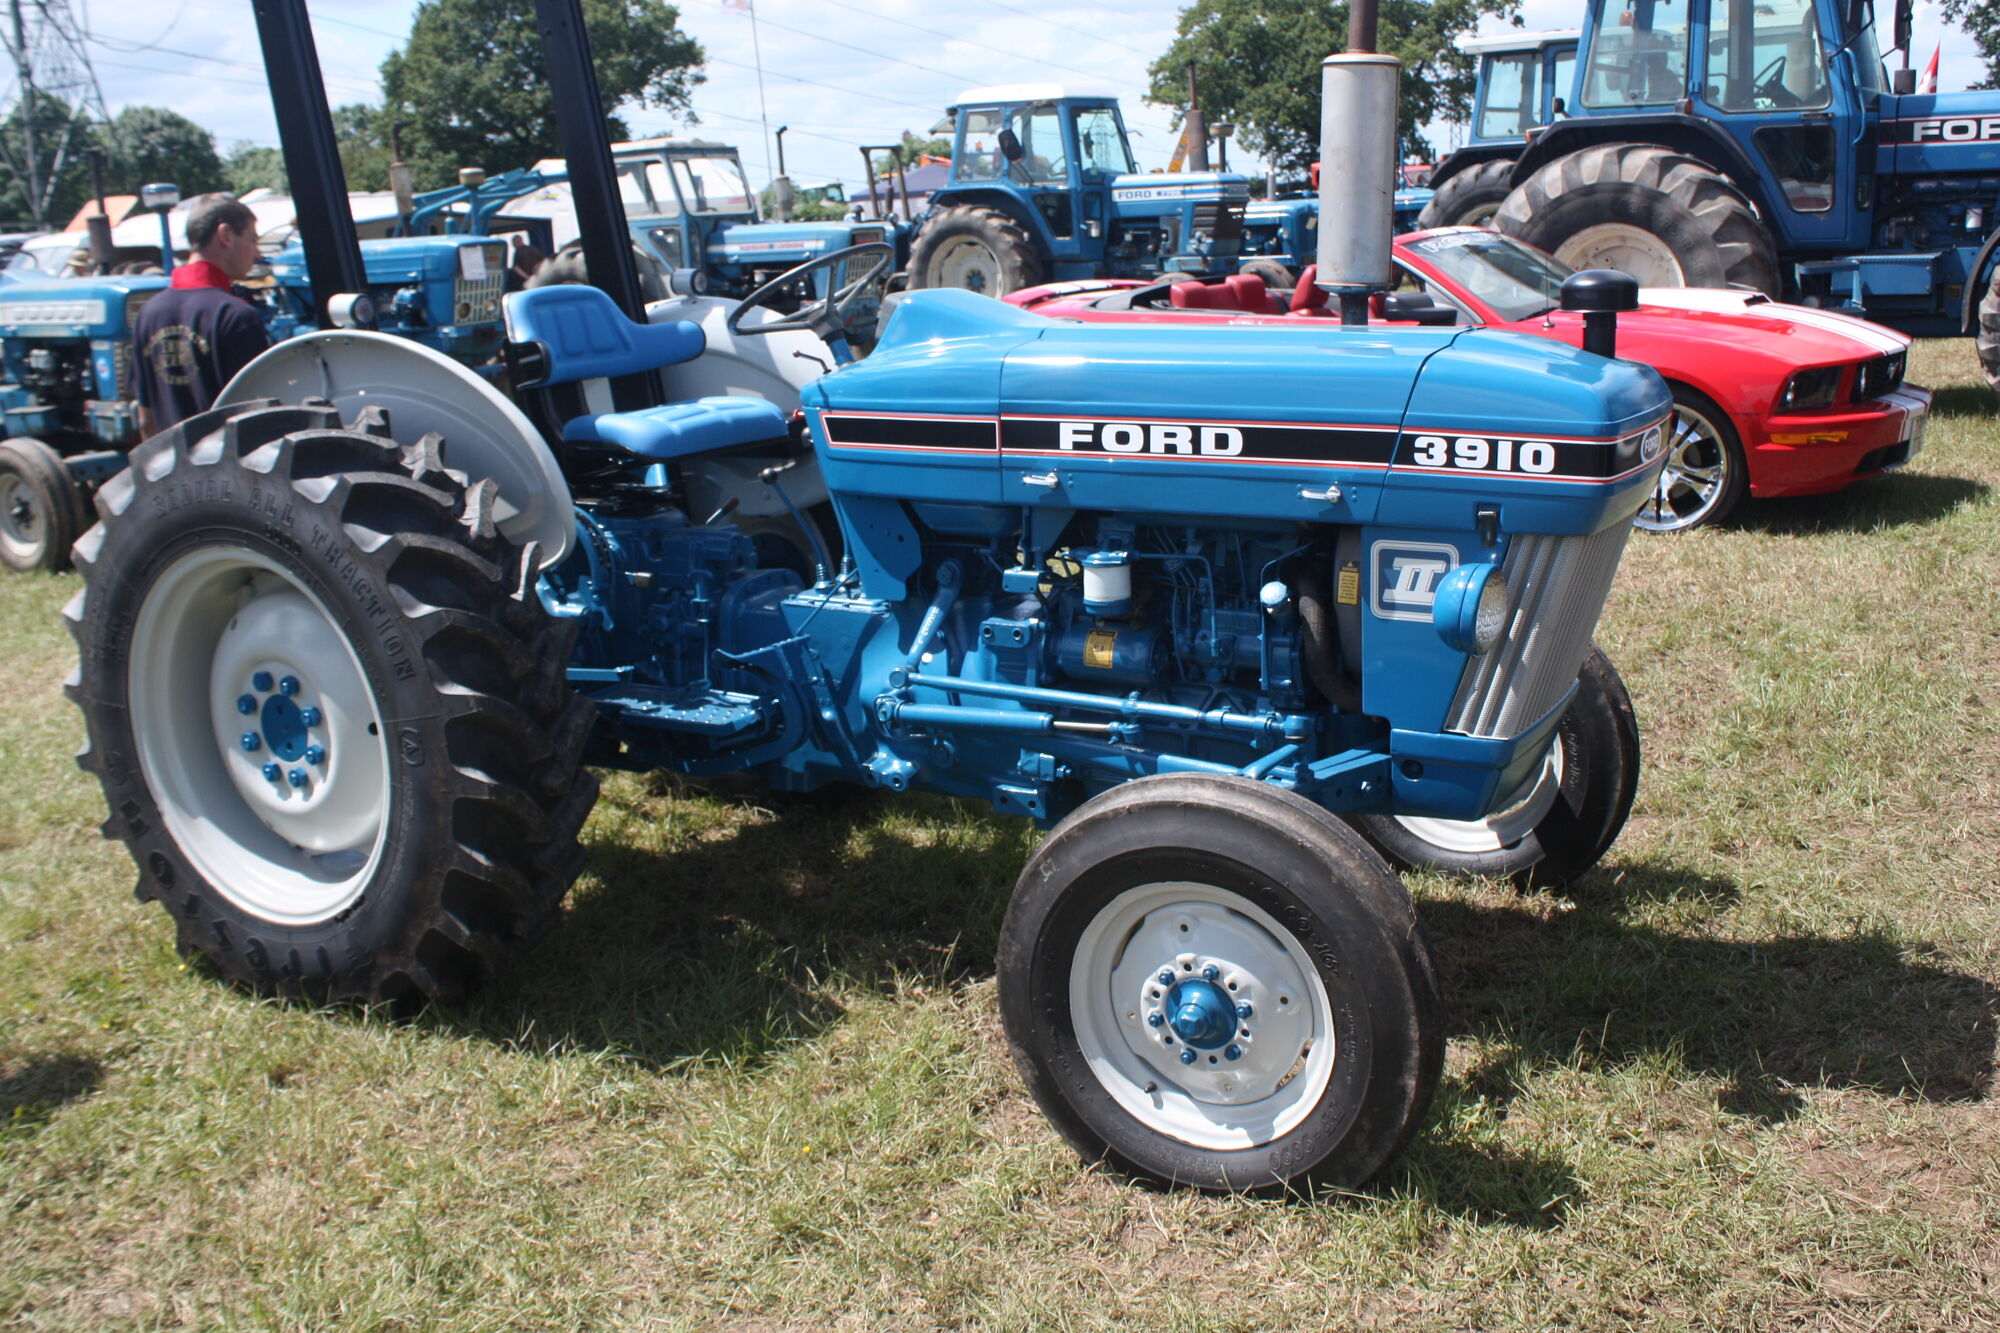 Ford 3910 Tractor Construction Plant Wiki Fandom